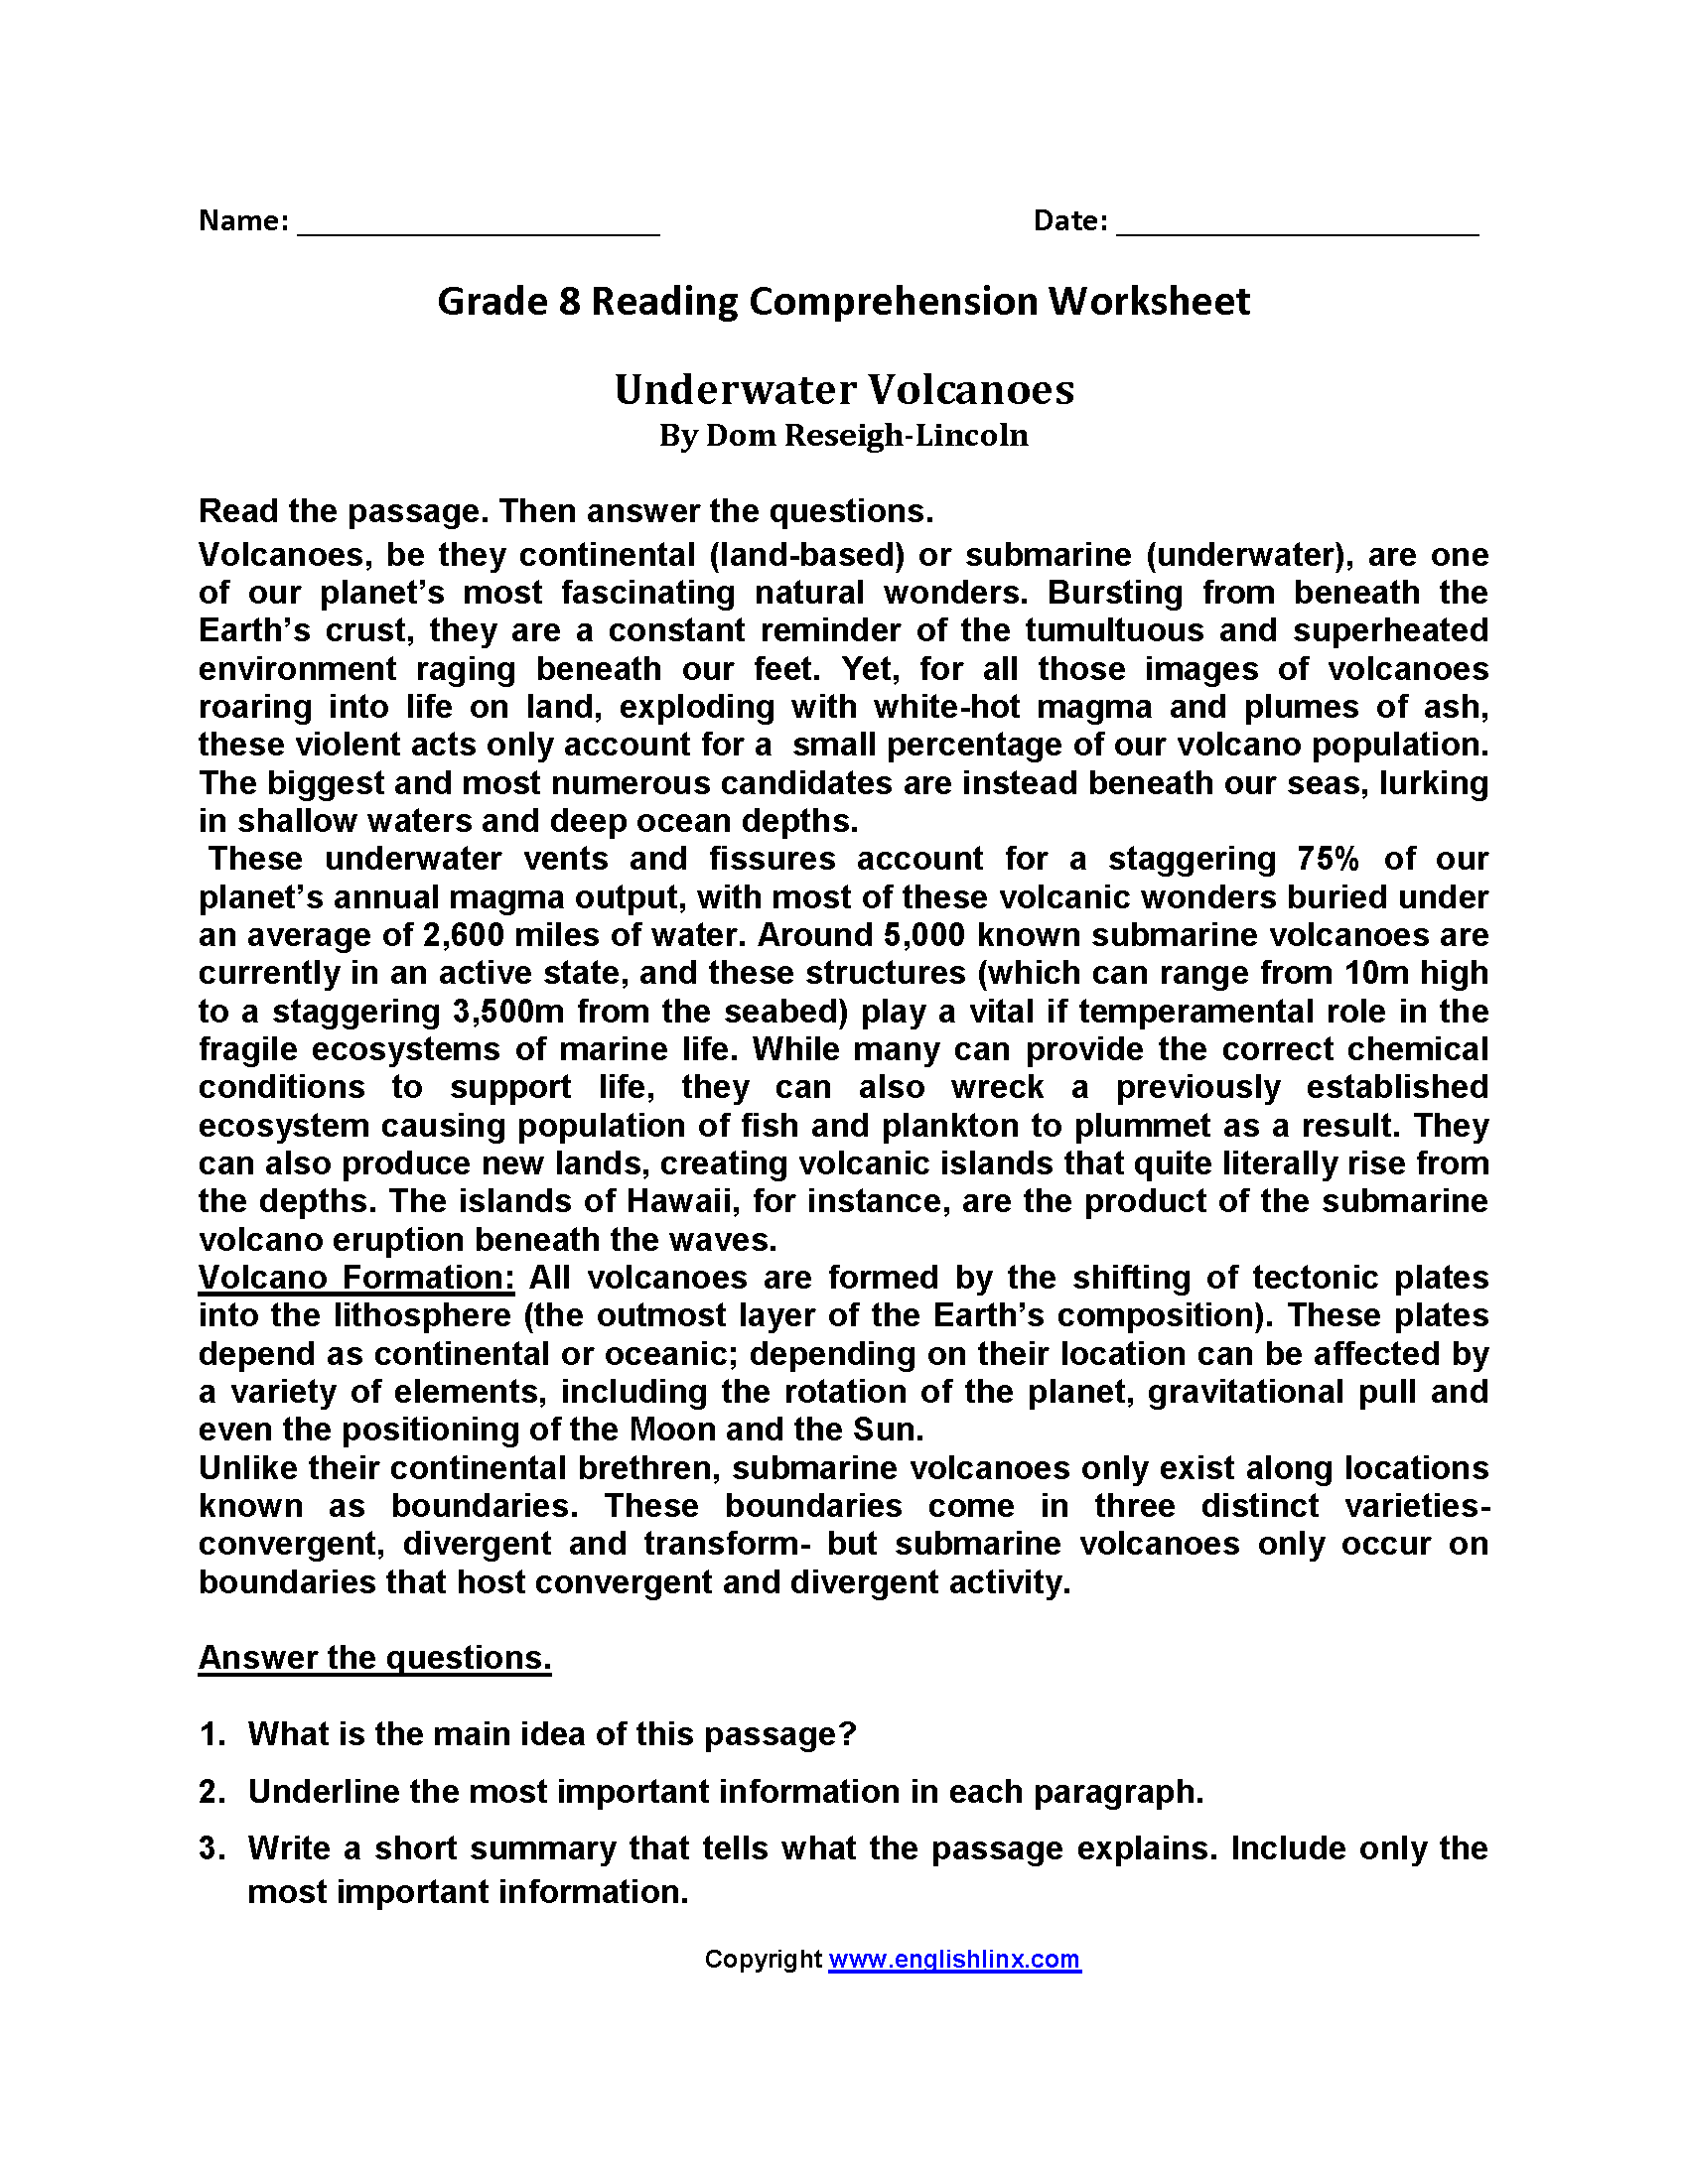 Worksheets Reading Comprehension Worksheets 8th Grade english worksheets reading eighth grade worksheets